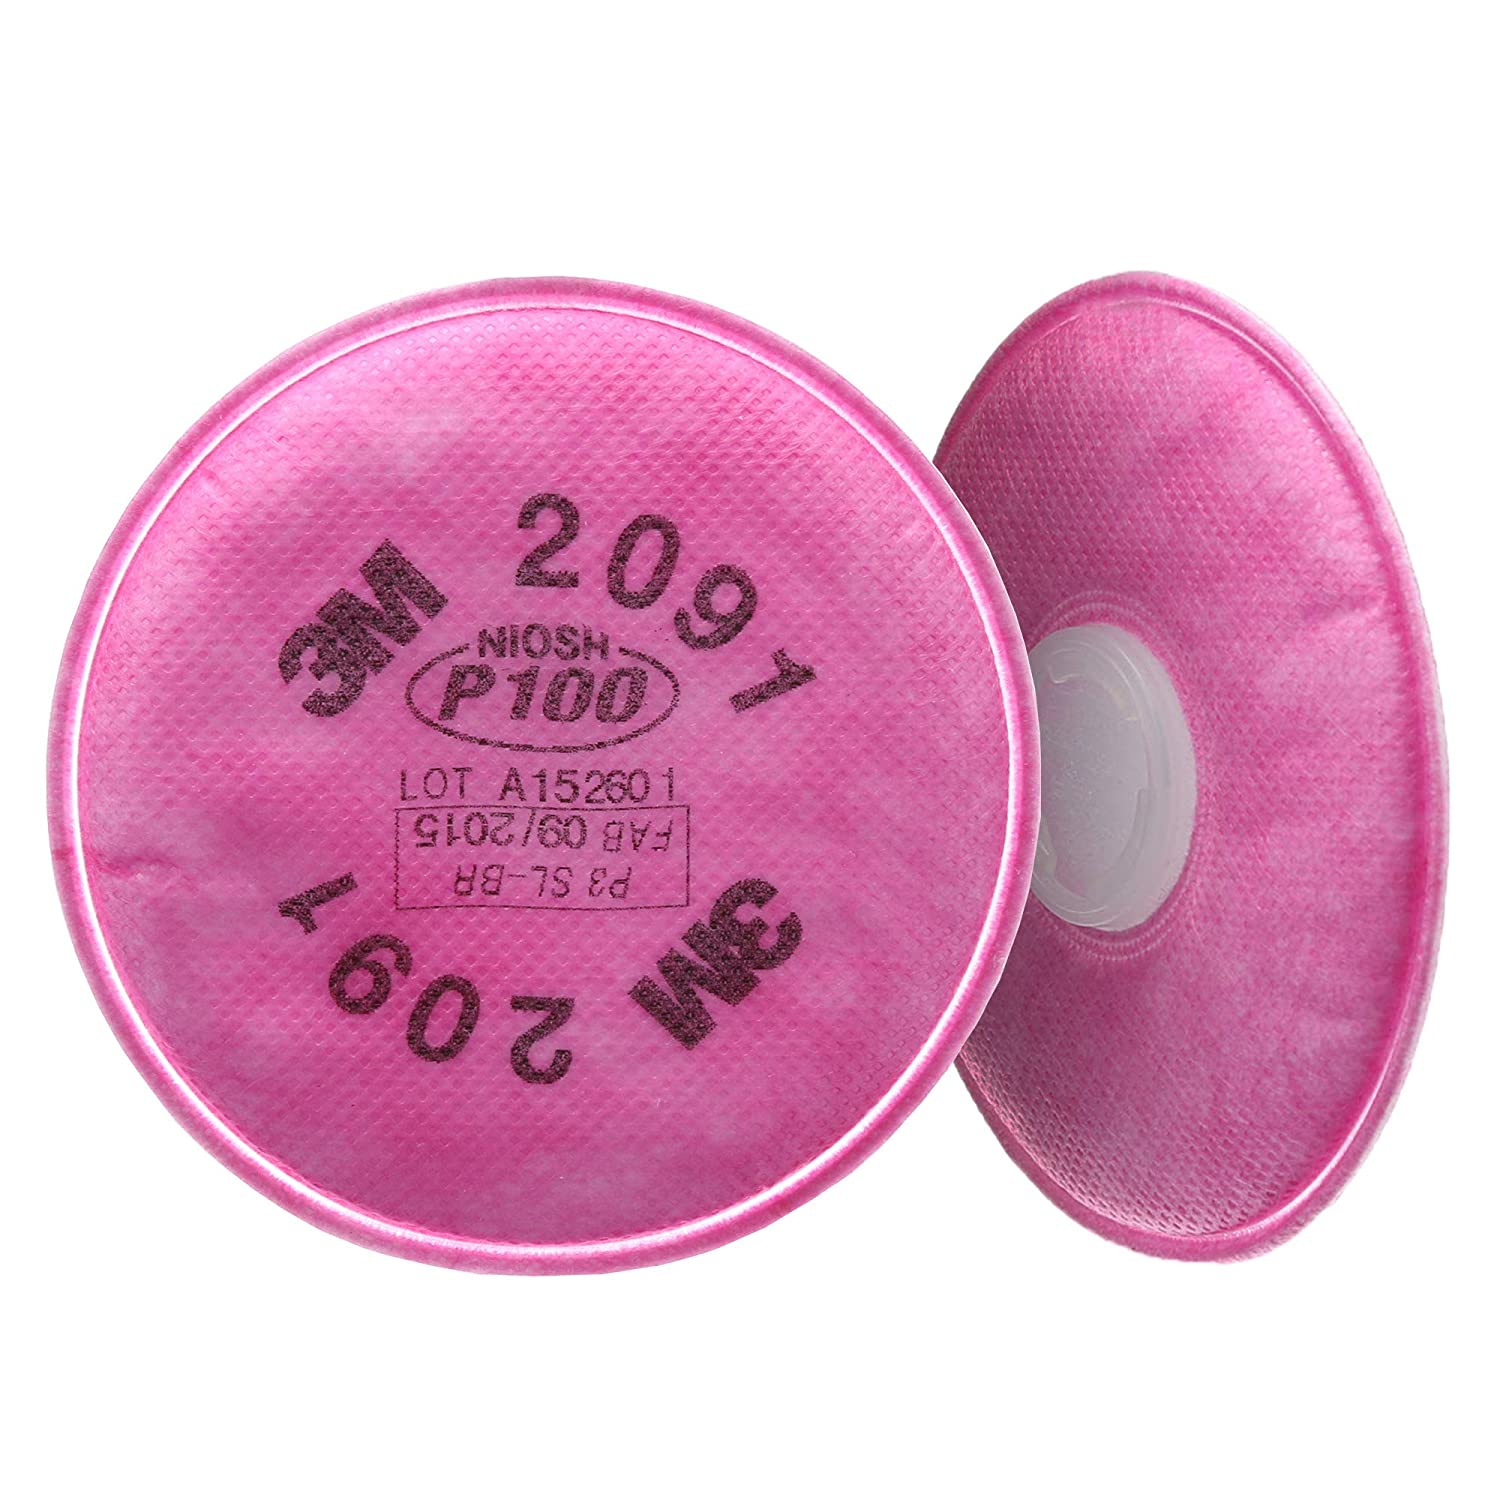 3M P100 Respirator Filter 2091 Against Protect 50 Ranking TOP20 70% OFF Outlet Helps Pairs